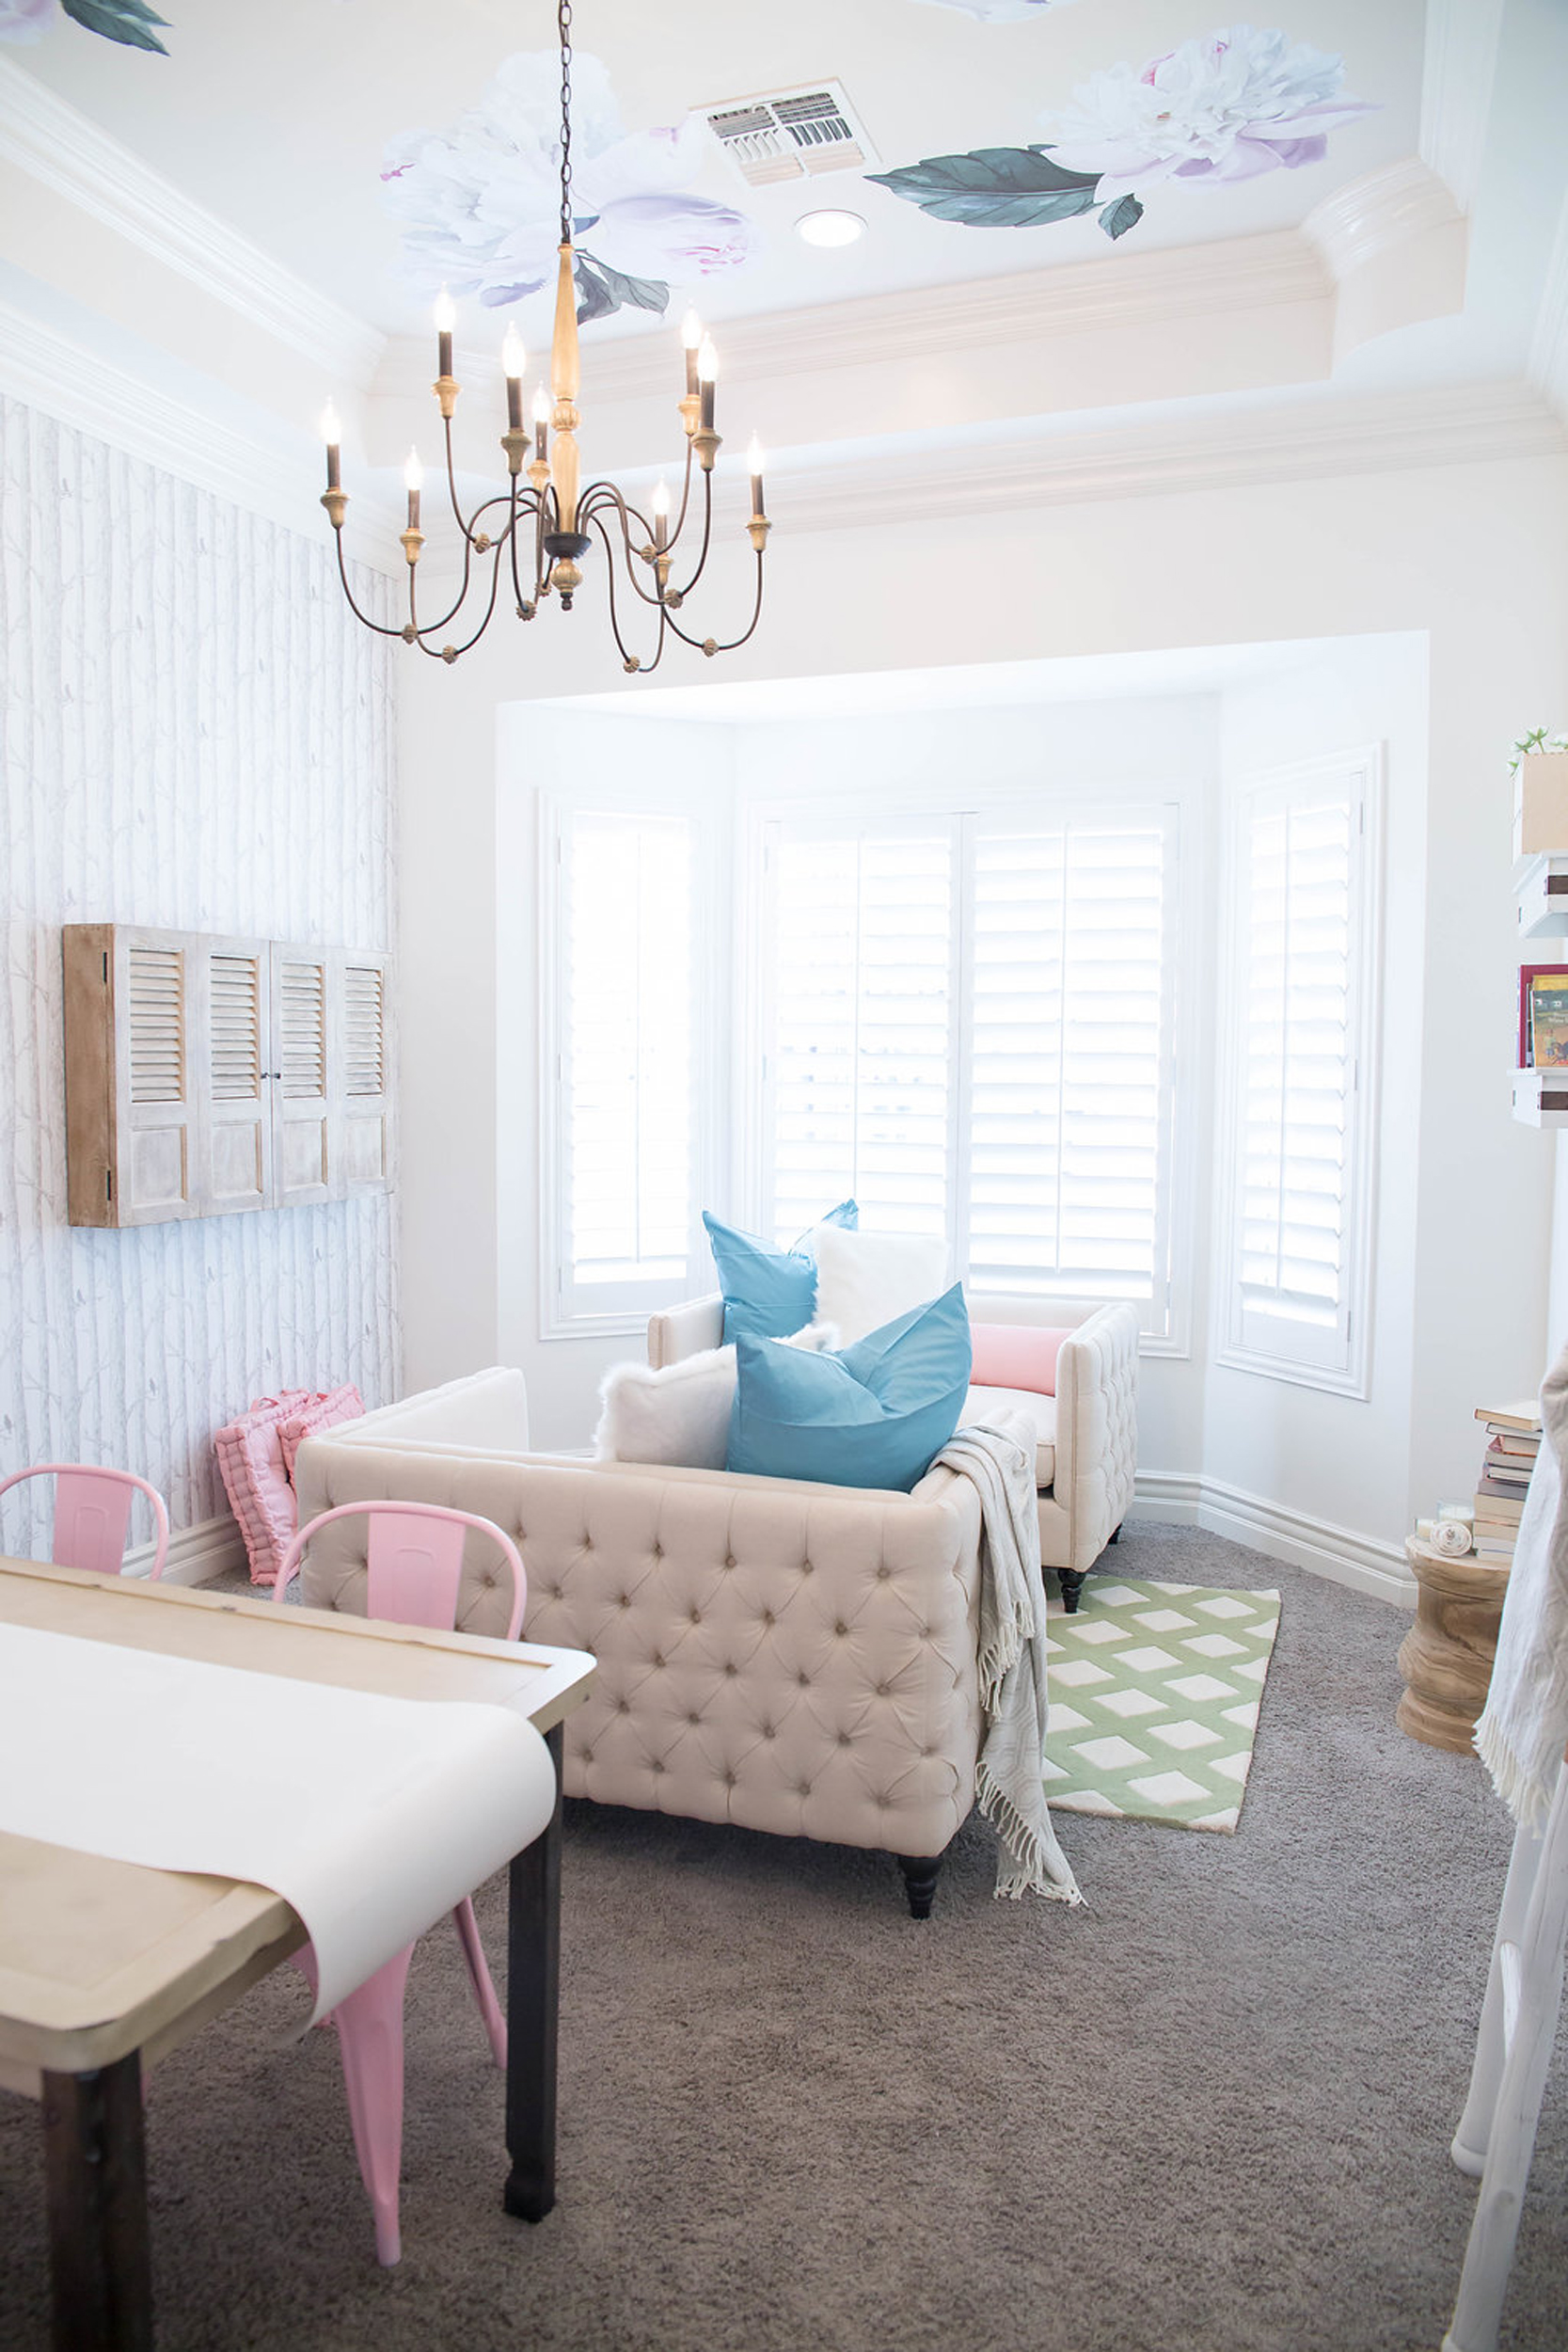 THE LifeStyled COMPANY - Sunset Court Project